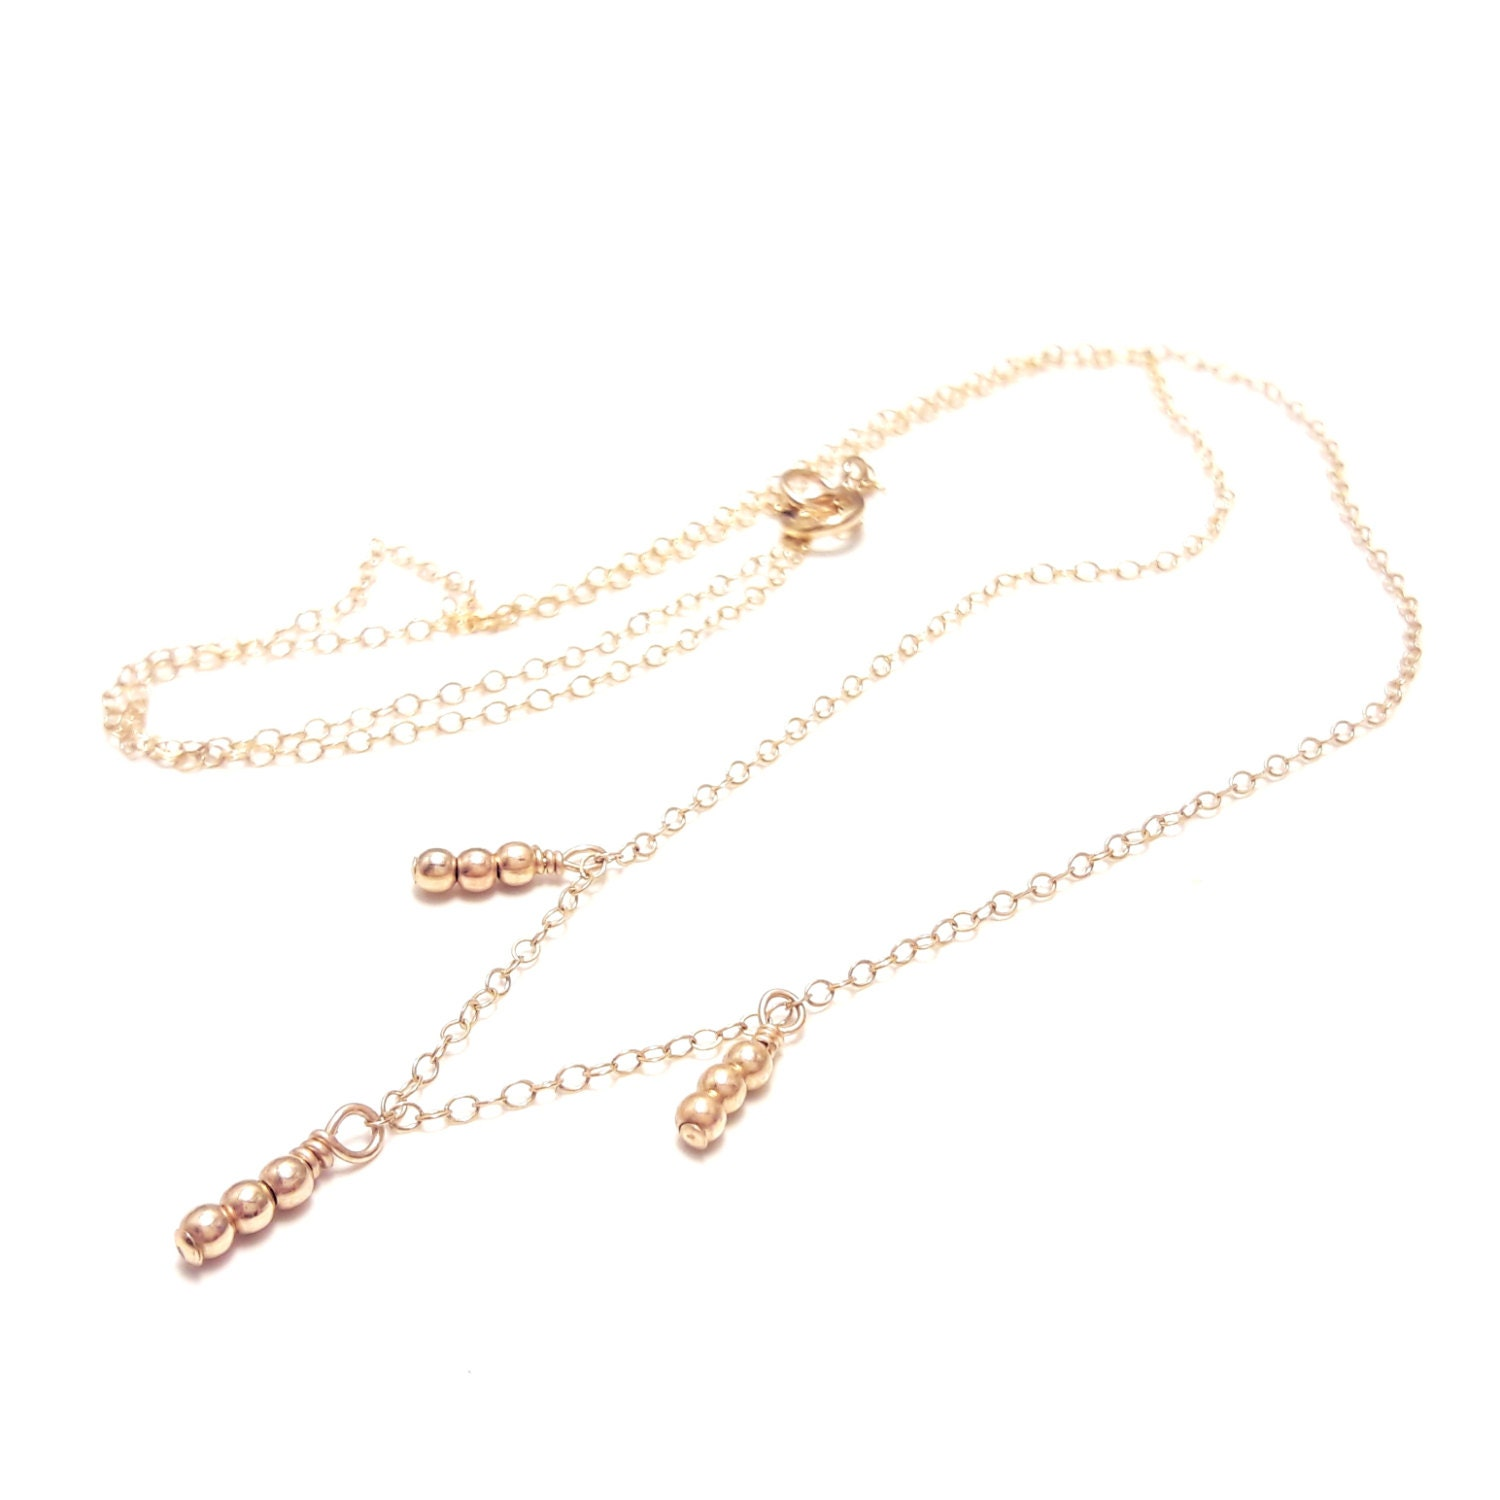 delicate gold necklace dainty gold necklace delicate necklace